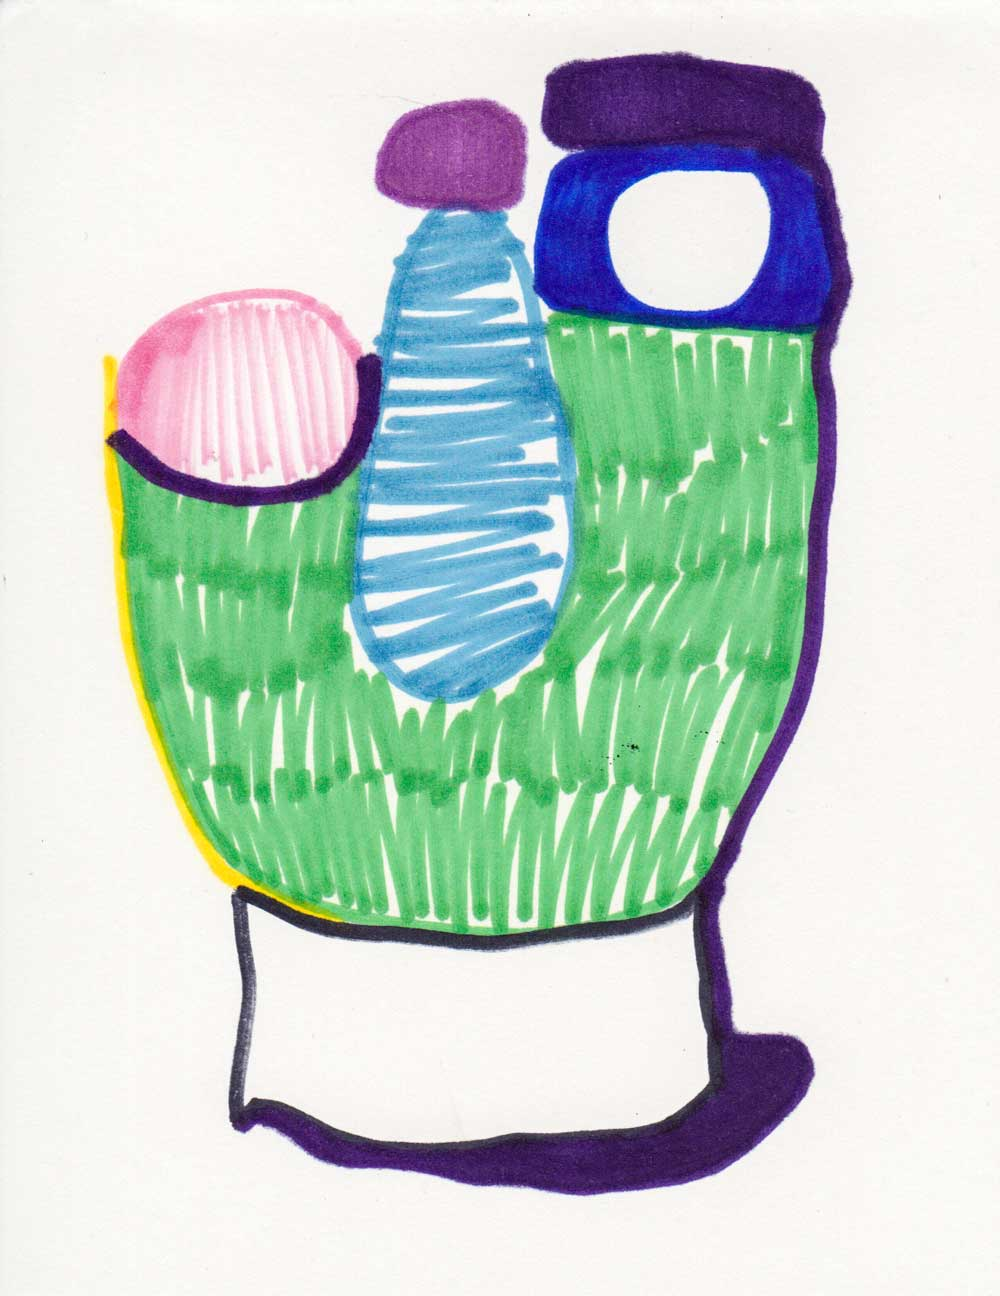 18-Scan-SmallDrawings-web-25